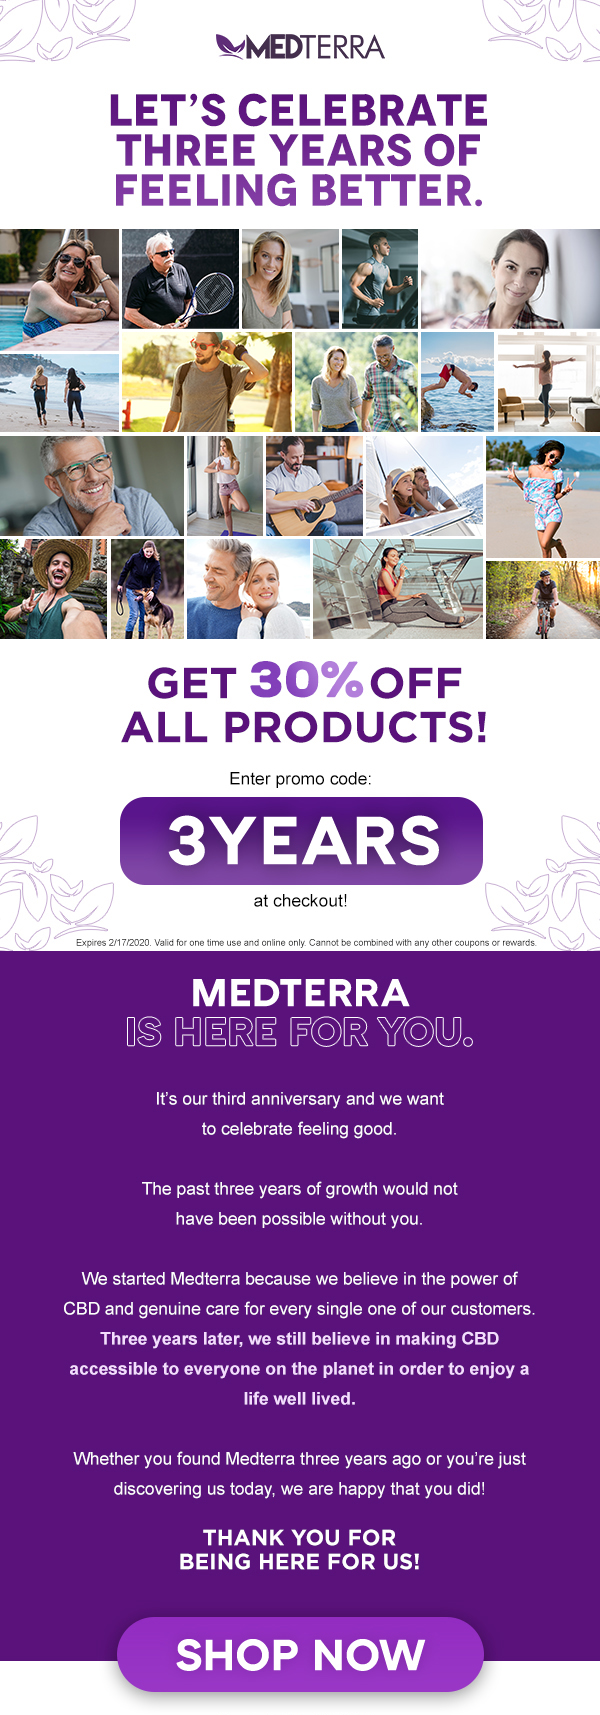 Get 30% off with the code 3YEAR